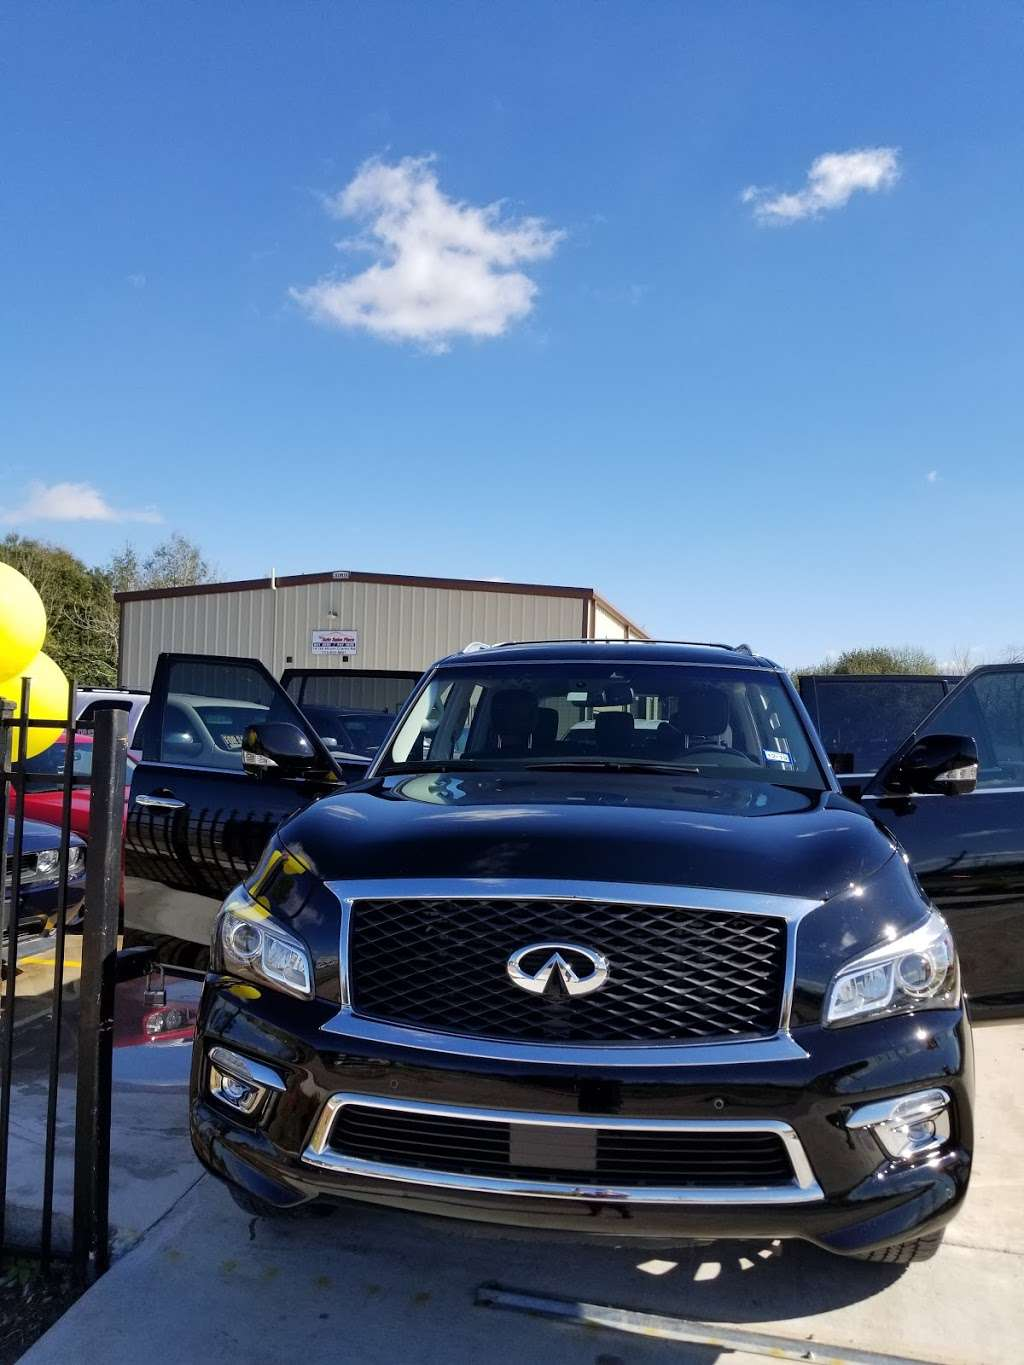 The Auto Sales Place and Hand Car Wash - car dealer  | Photo 10 of 10 | Address: 14129 Hiram Clarke Rd, Houston, TX 77045, USA | Phone: (832) 275-9116